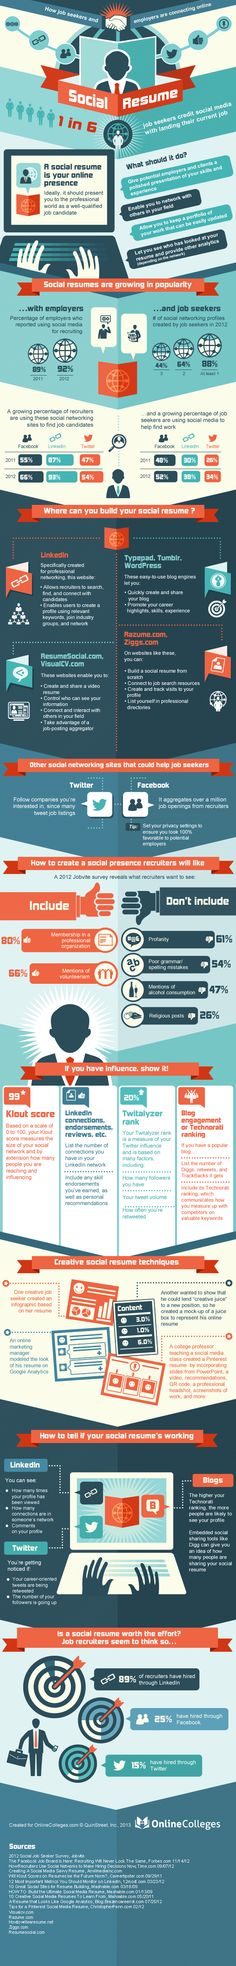 LinkedIn confirms itself as n° 1 professional social media - from:Social Media Can Get You Paid - Infographic